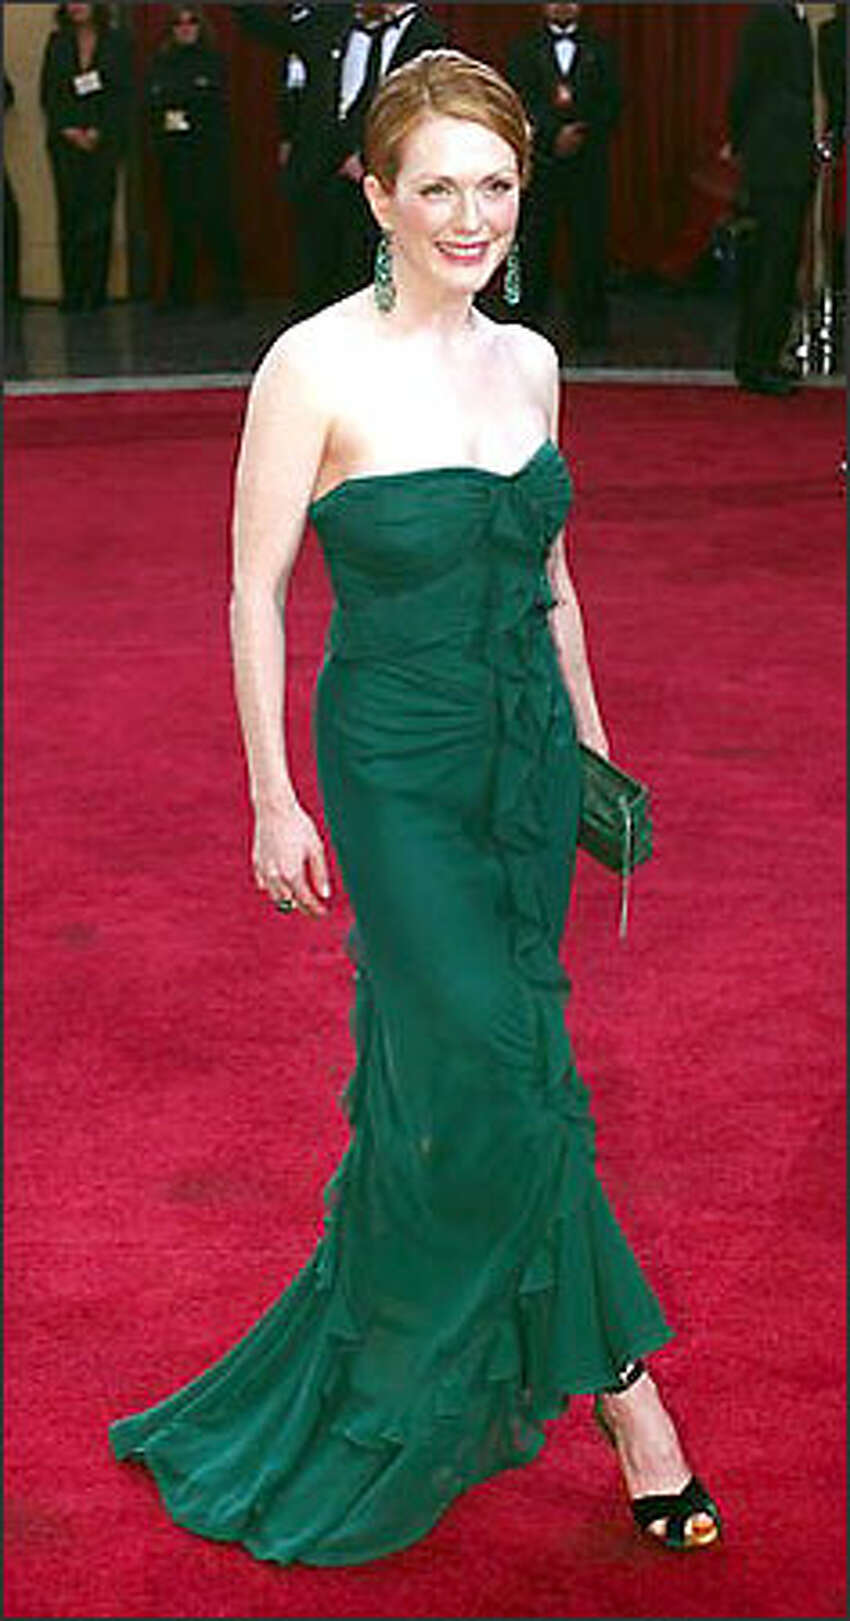 Actress Julianne Moore arrives for the 75th annual Academy Awards Sunday, March 23, 2003, in Los Angeles. Moore is nominated for best actress in a leading role for her work in